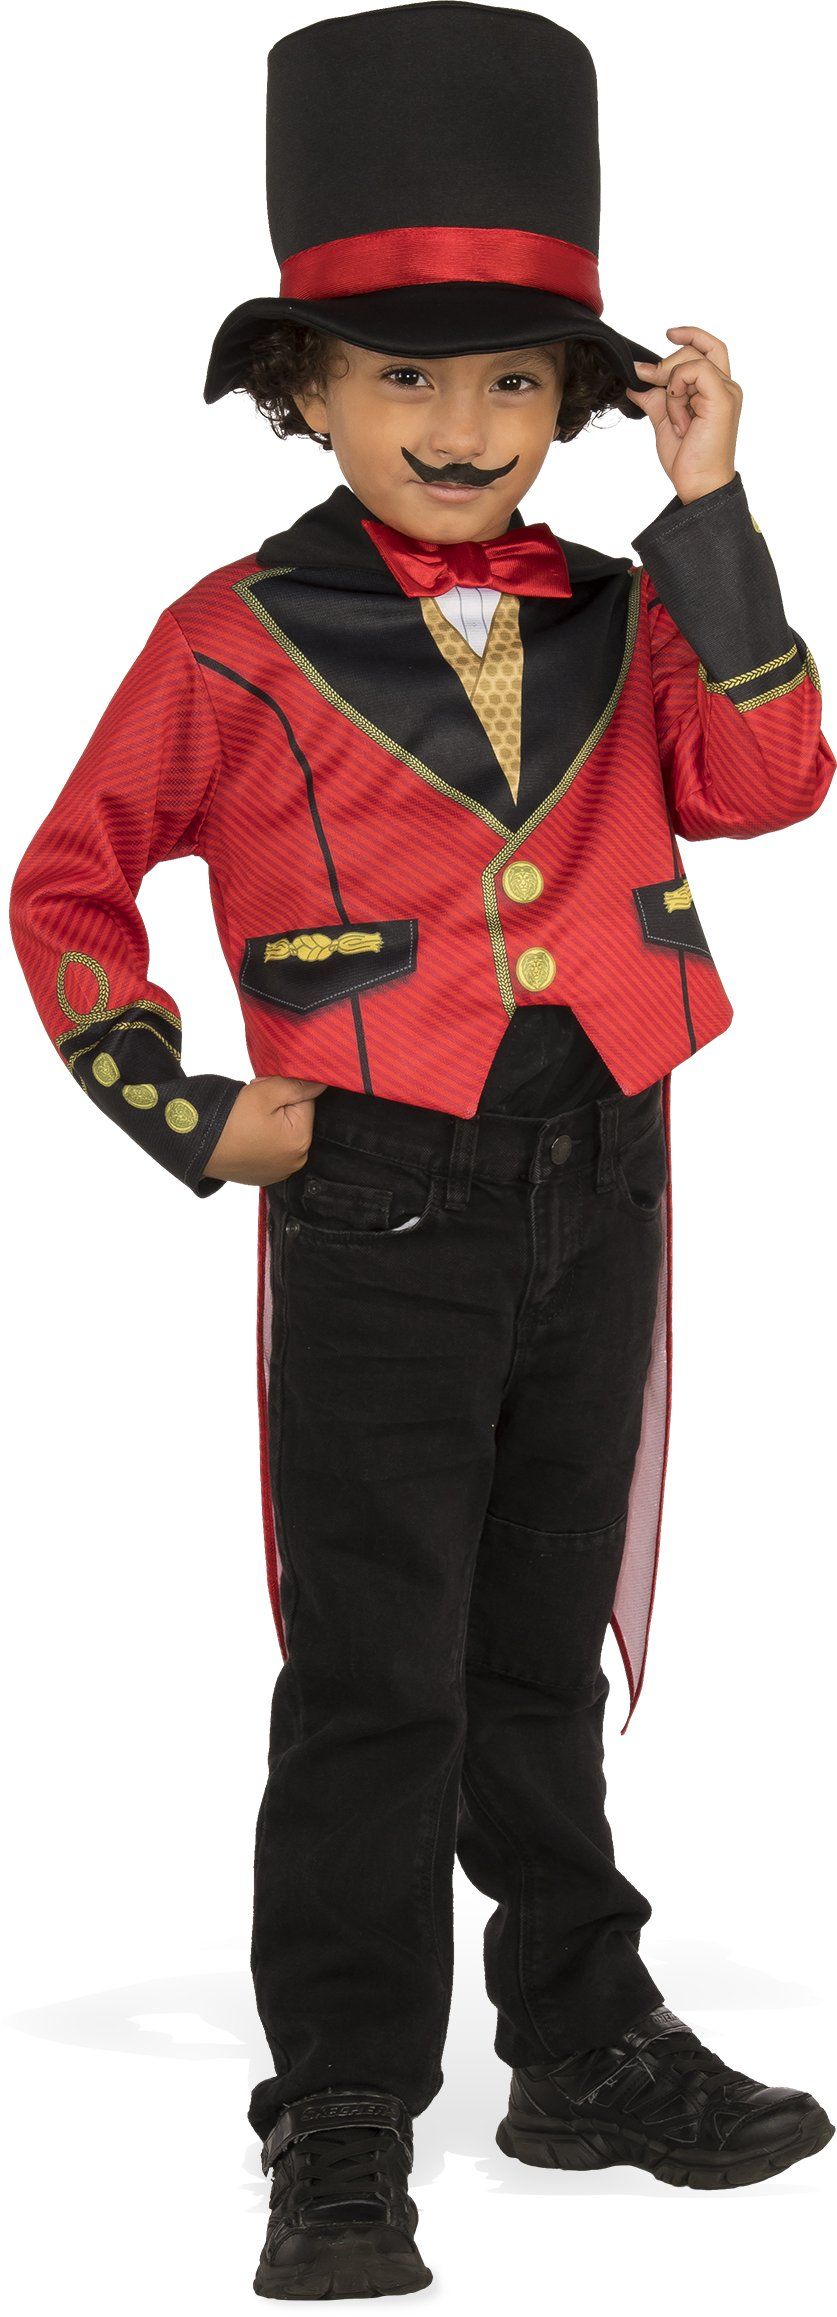 Rubies Child's Ringmaster Costume, X-Small, Multicolor